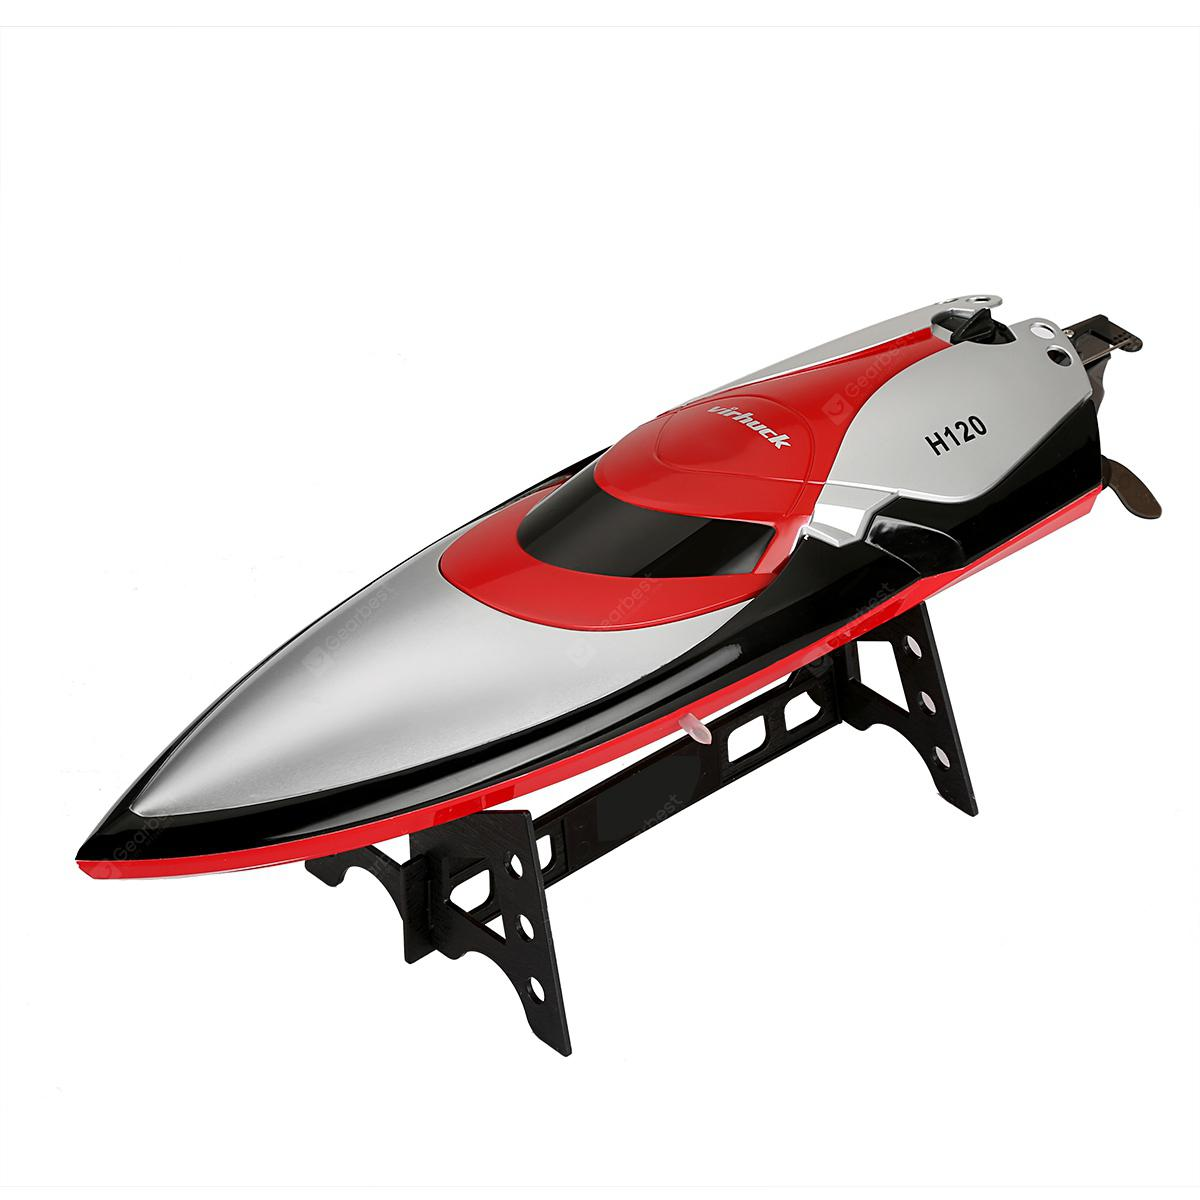 Virhuck H120 RC Boat Red LOVE RED